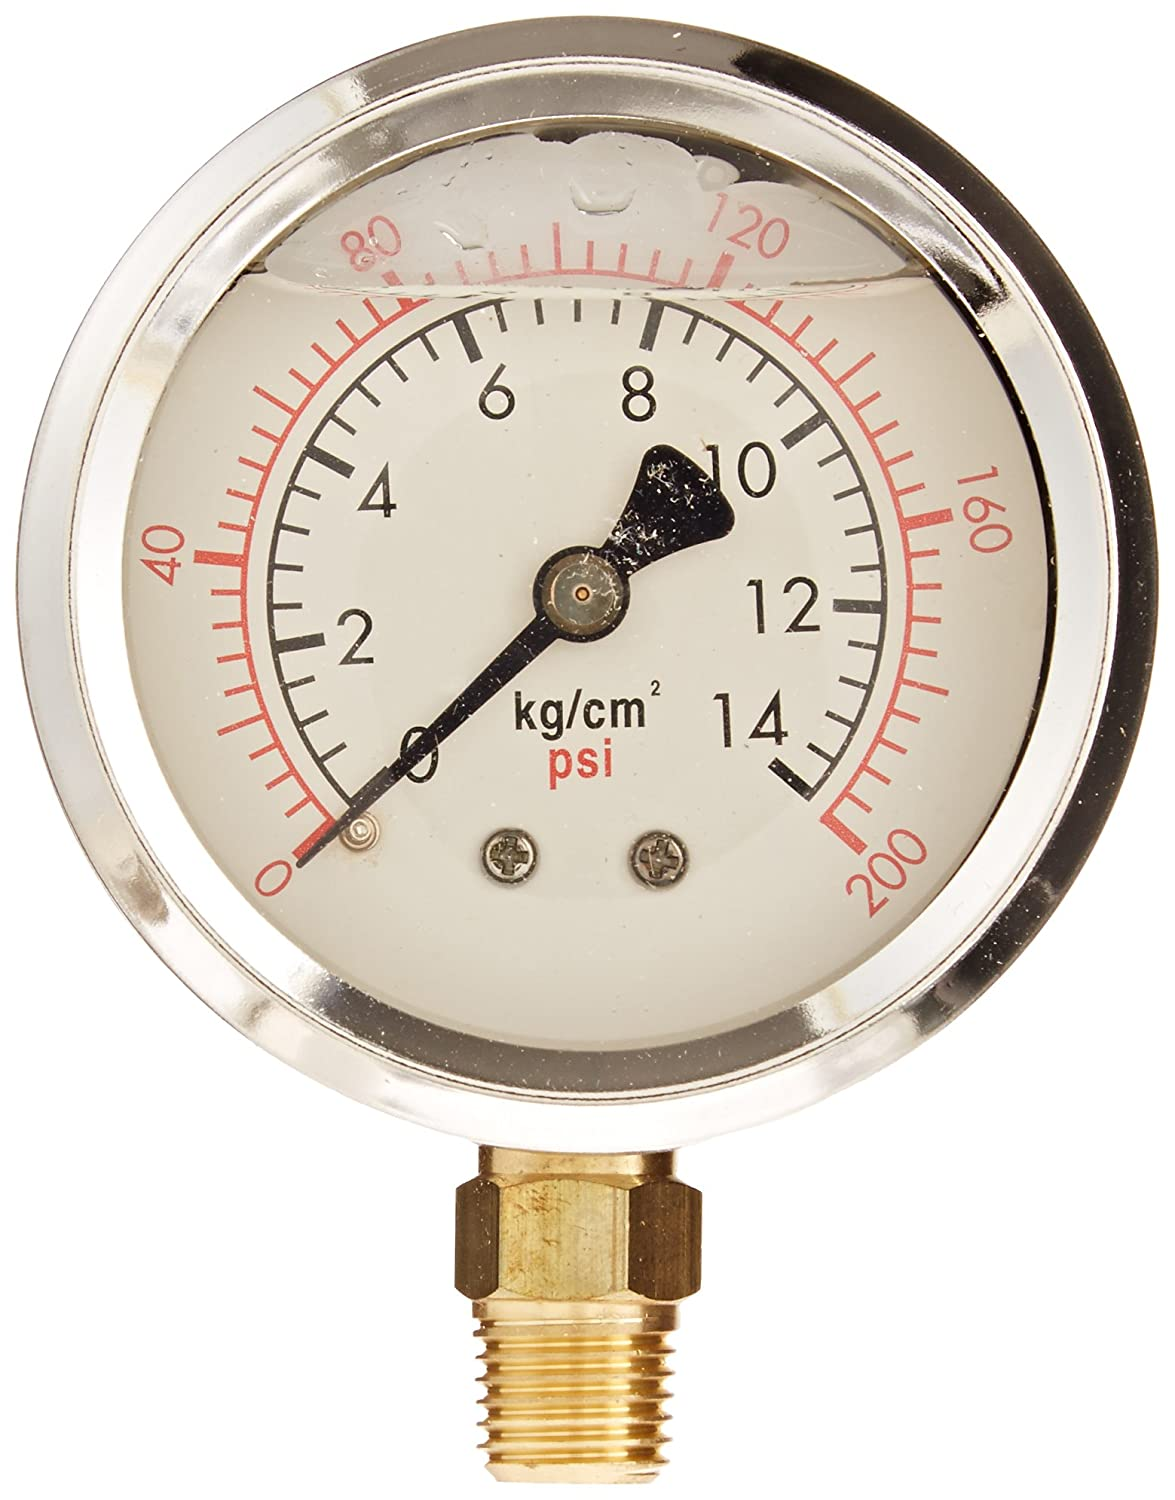 1//4 Male NPT Plastic Lens 0//1000 psi Brass Internals 2-1//2 Dial Size PIC Gauge PRO-201L-254M Glycerin Filled Industrial Bottom Mount Pressure Gauge with Stainless Steel Case